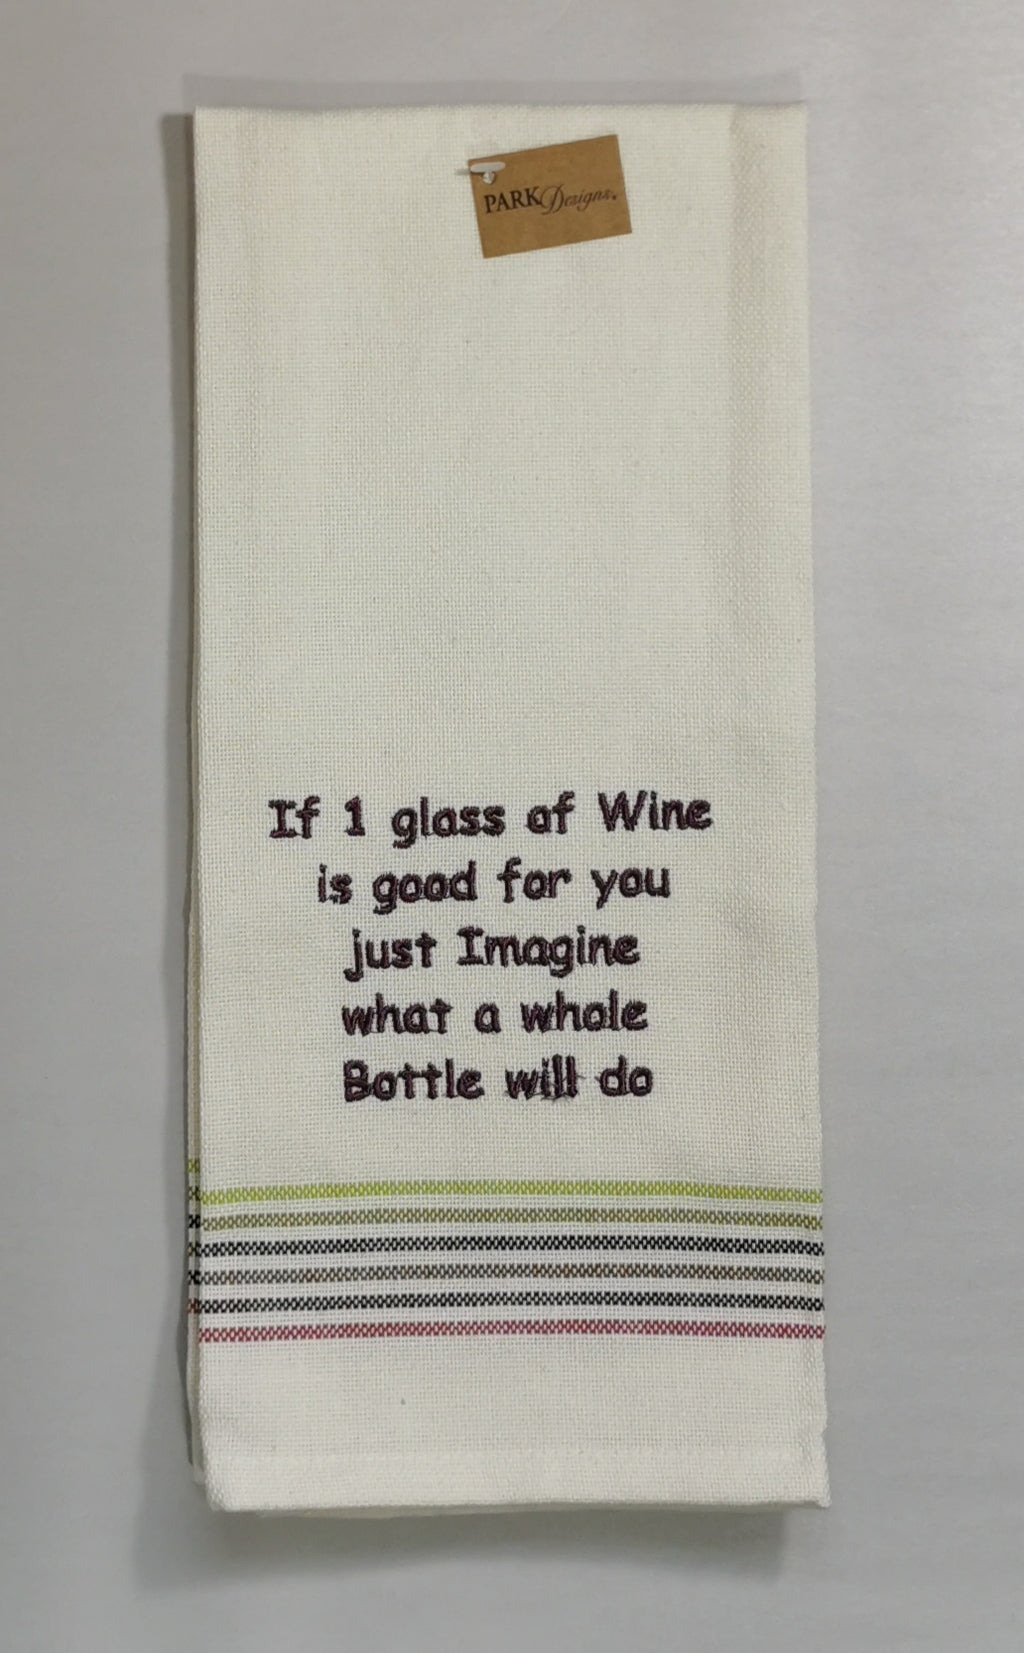 Dishtowel - If 1 glass